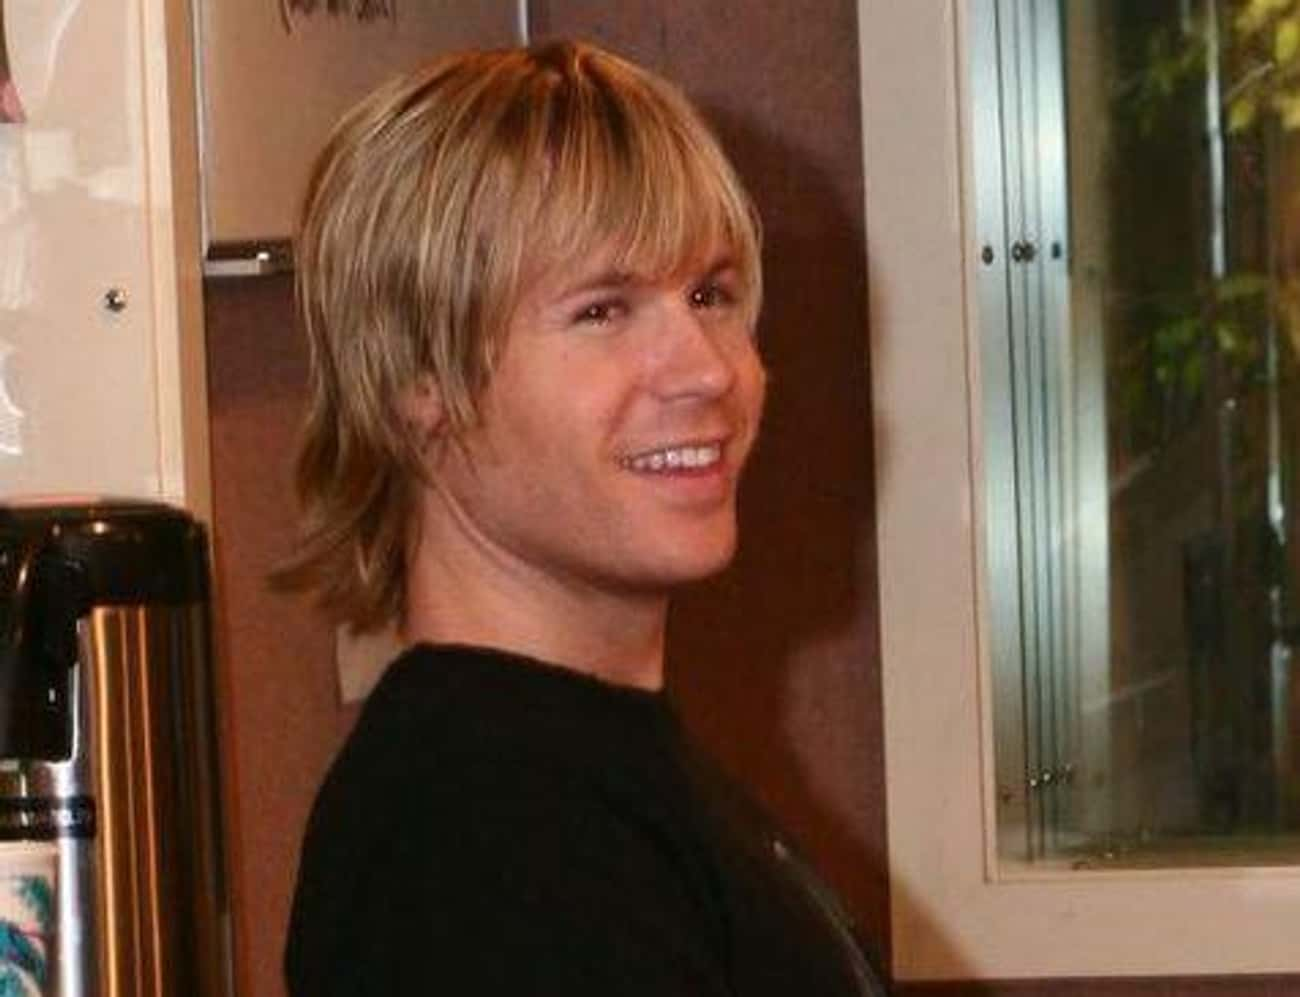 Ashley Parker Angel From O-Tow is listed (or ranked) 1 on the list These Boy Band Members Tried To Go Solo And Failed Miserably